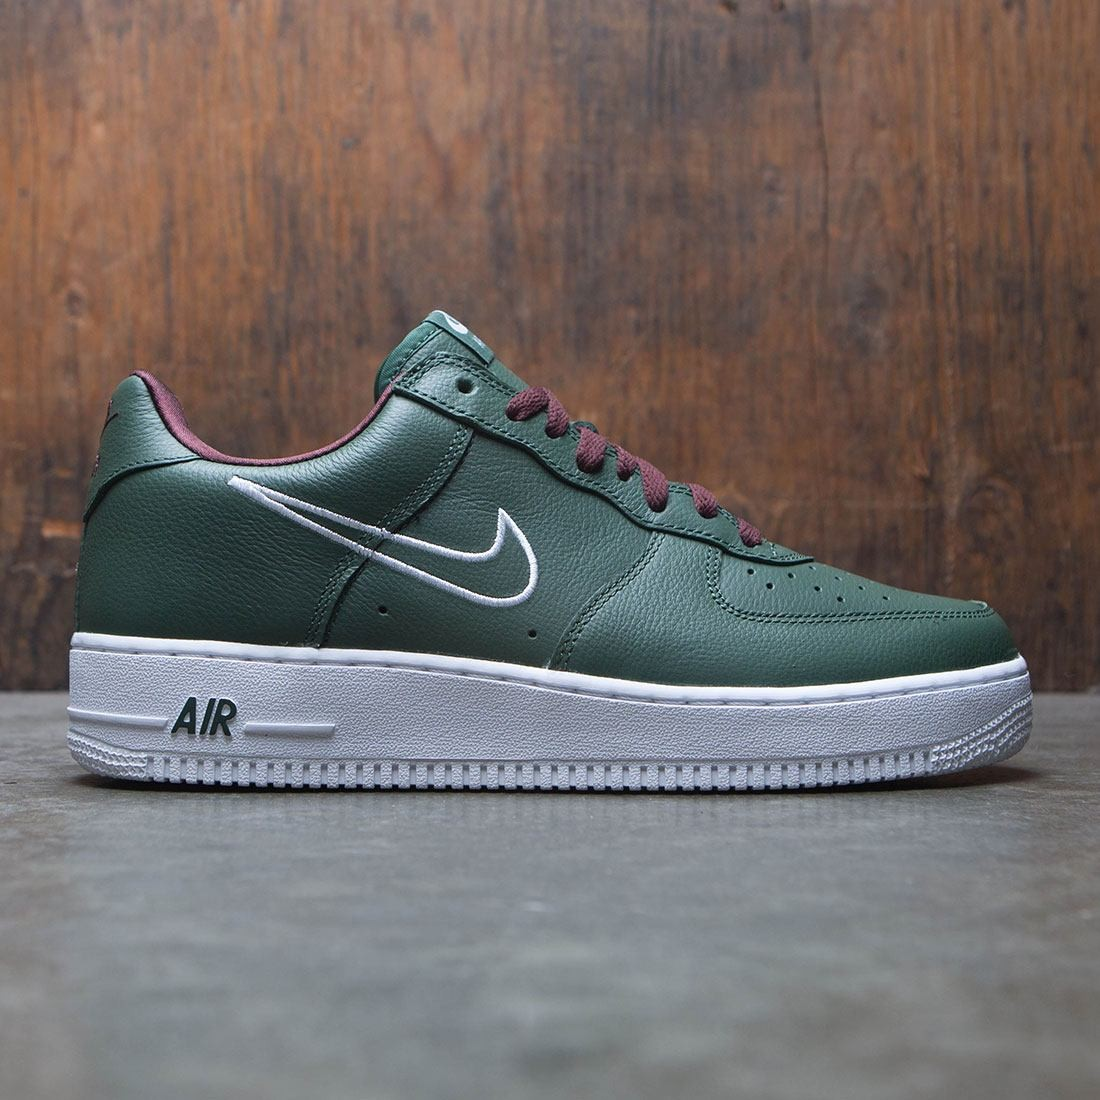 best loved c0d1c 4a264 ... discount code for nike men air force 1 low retro green deep forest  white el dorado